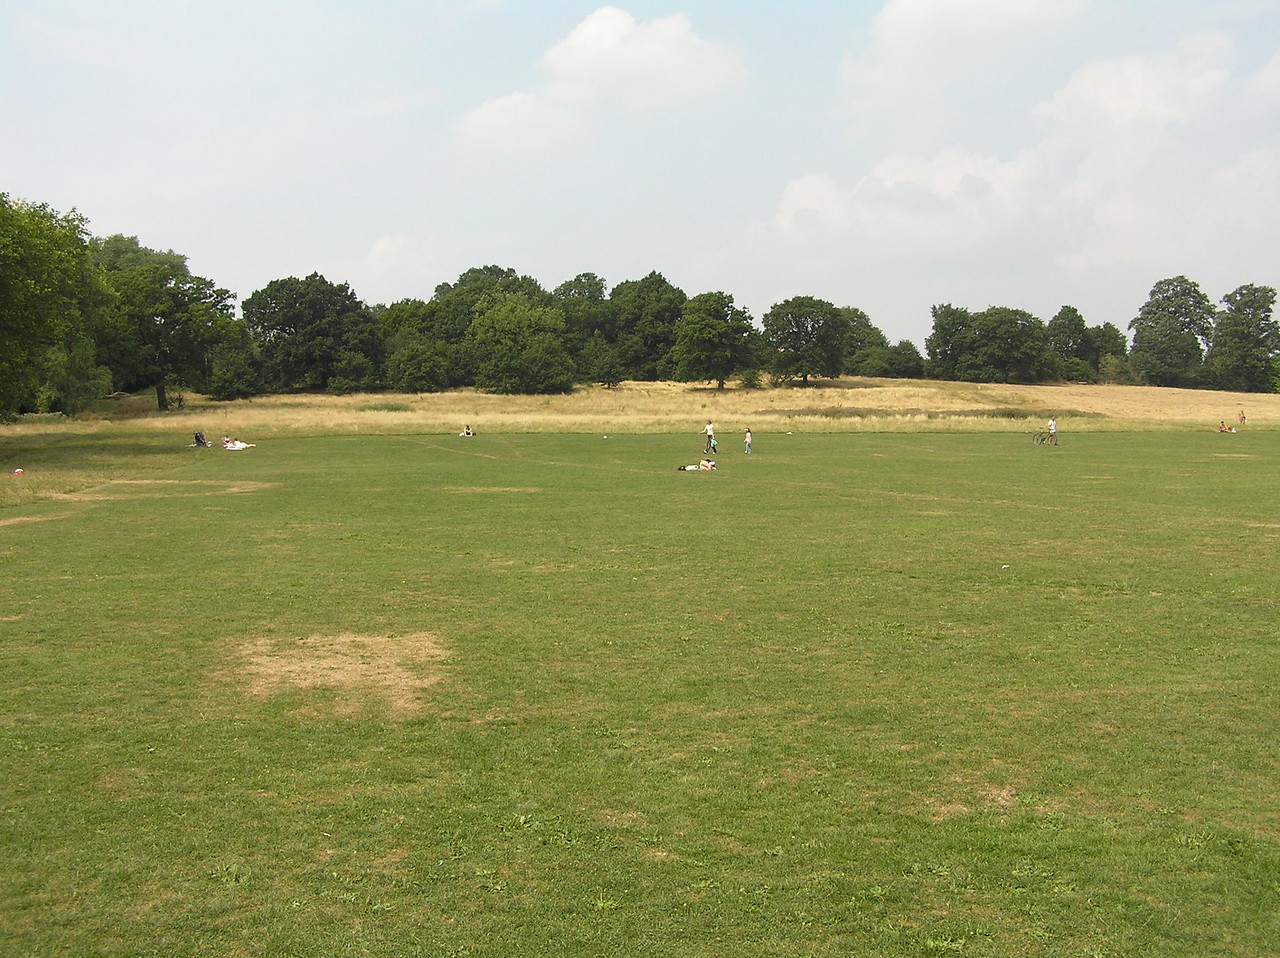 Looking north from the south side of Hampstead Heath. The Sahlin/Henson bench is just beyond the trees.